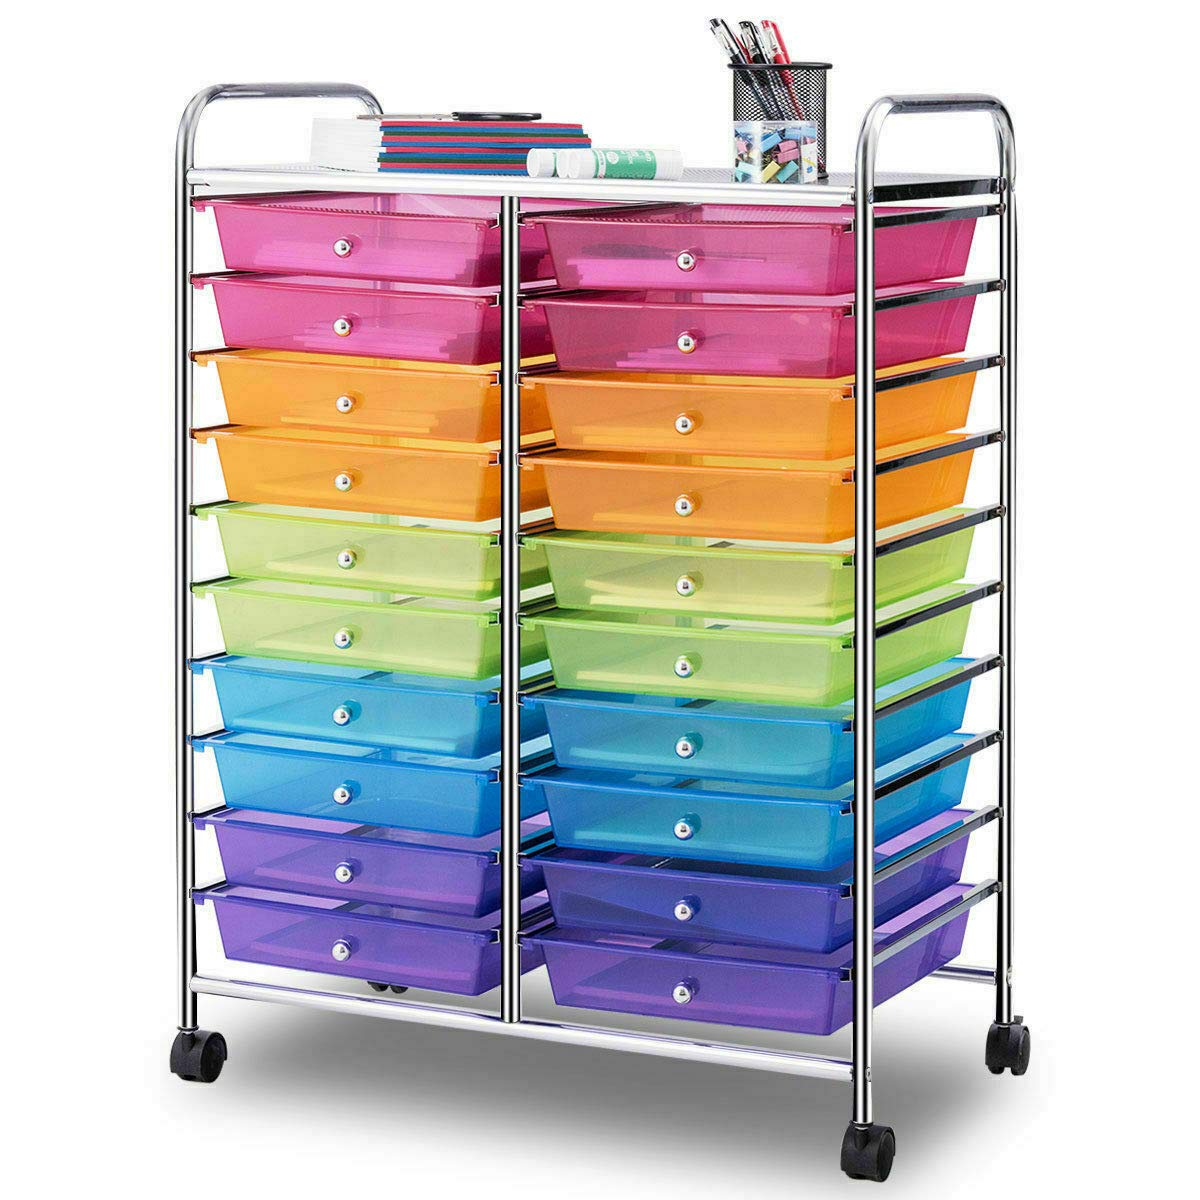 Mutli Color Rolling Scrapbook Paper Organizer School Office Studio Storage Cart w/ 20 Drawers with Ebook by FDInspiration (Image #6)